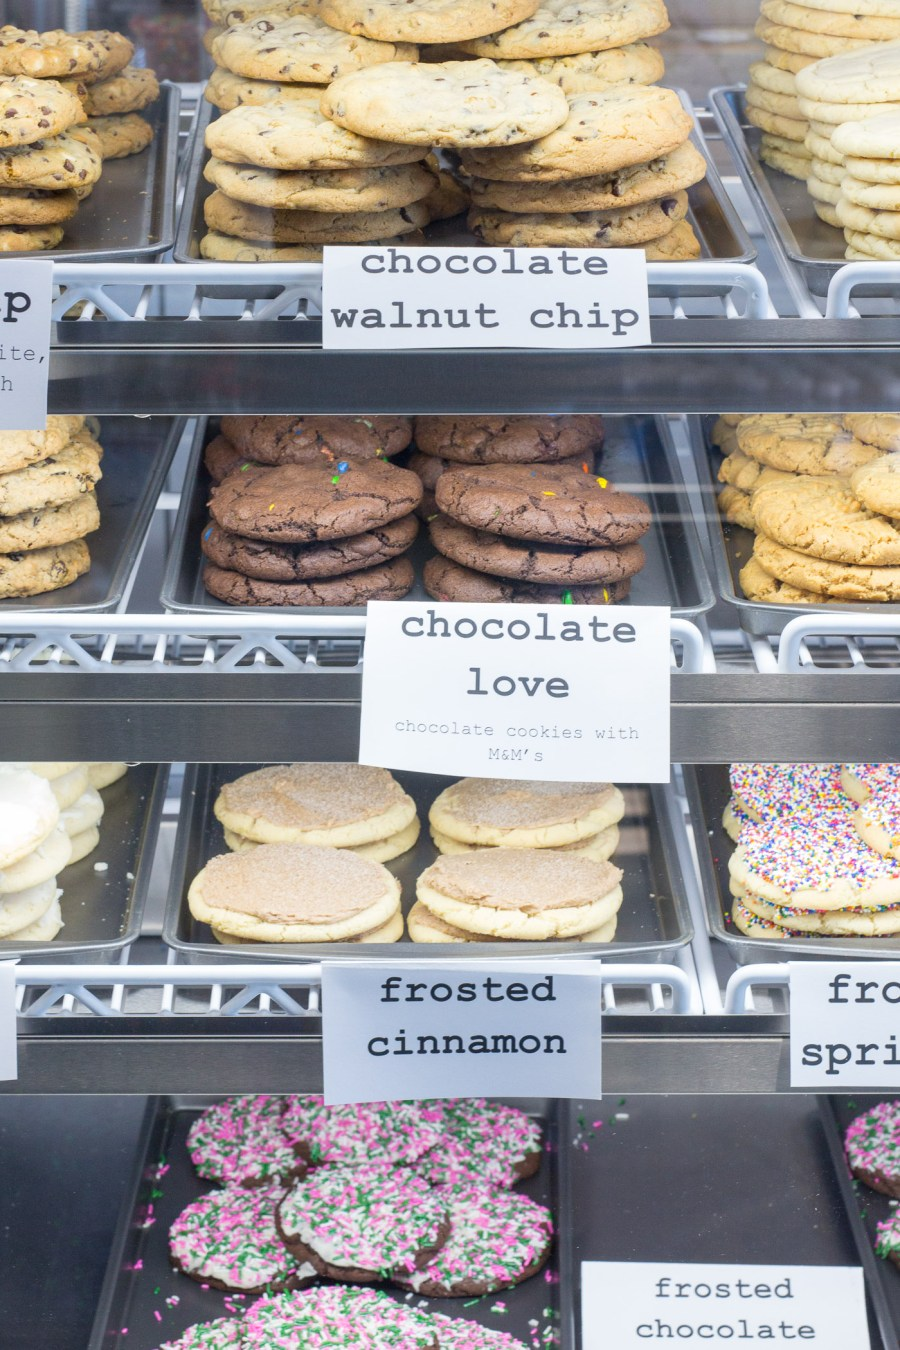 cookie baking tips from tsp. baking company in Las Vegas